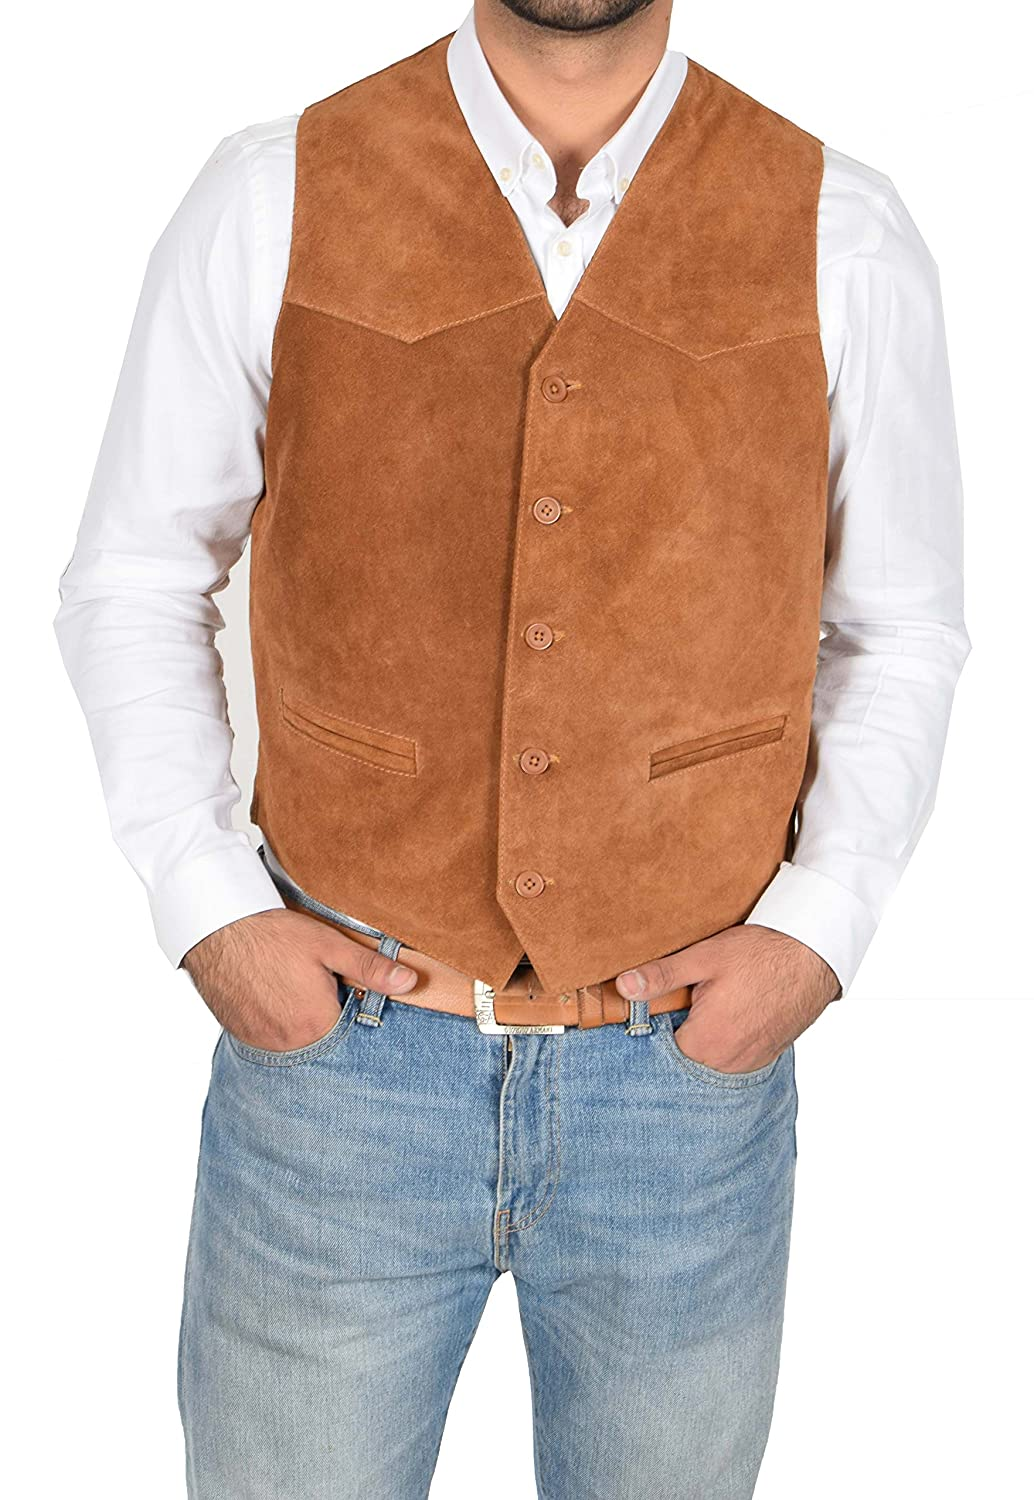 Real Suede Waistcoat for Mens Classic Style Soft TAN Suede Leather Vest Gilet - Cole Cole Tan